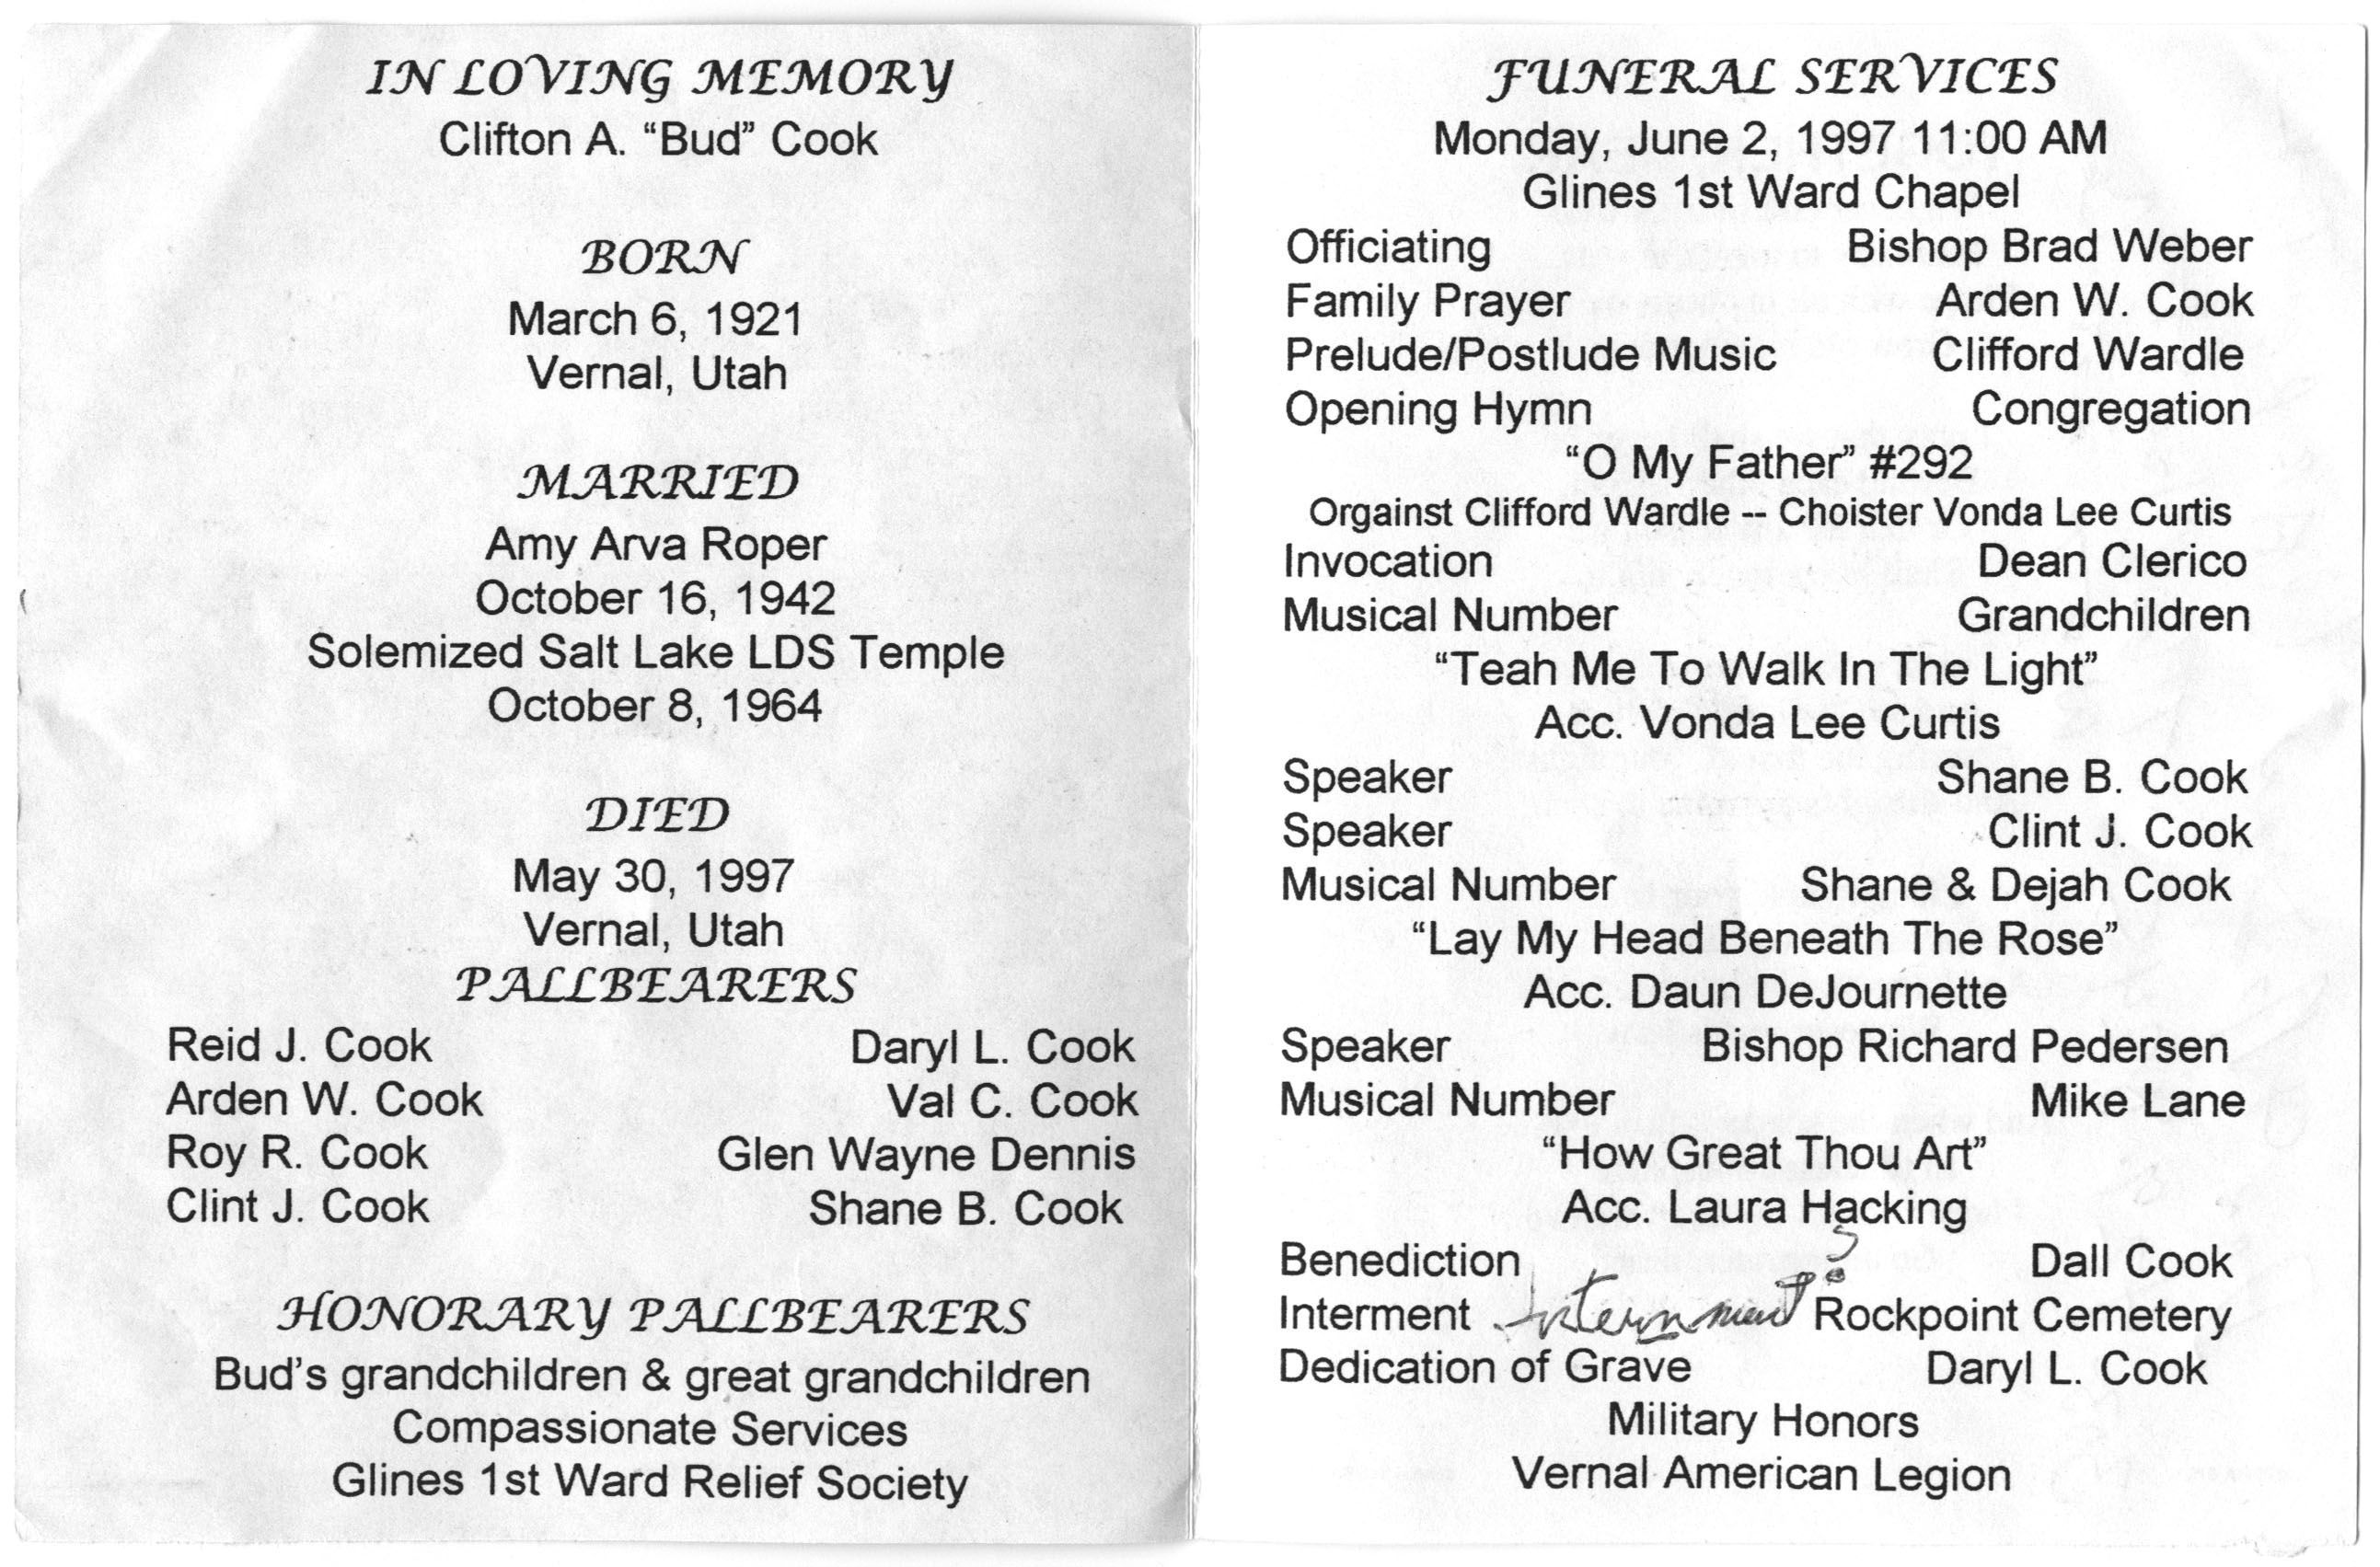 clifton a bud cook funeral program family preserves